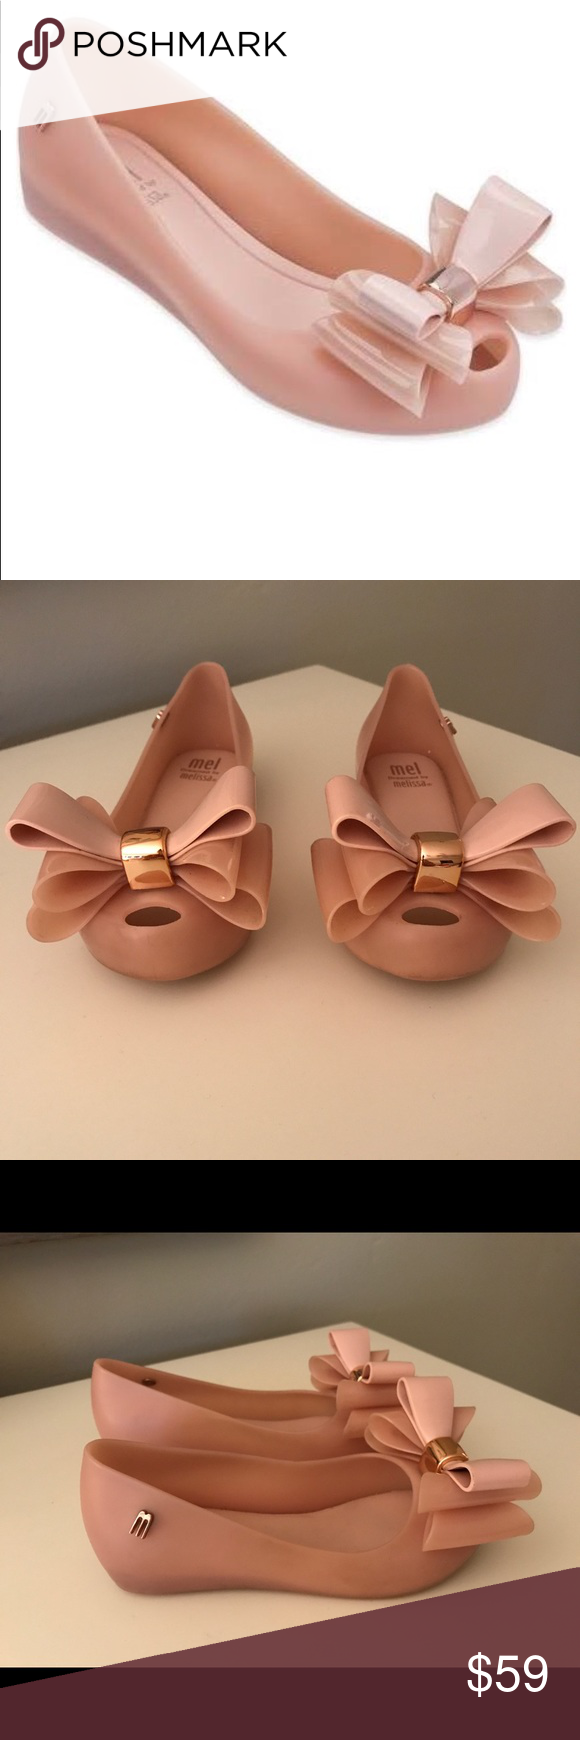 Shoes for light pink dress  Mini Melissa childus ultrabow shoe light pink  Melissa shoes Dress